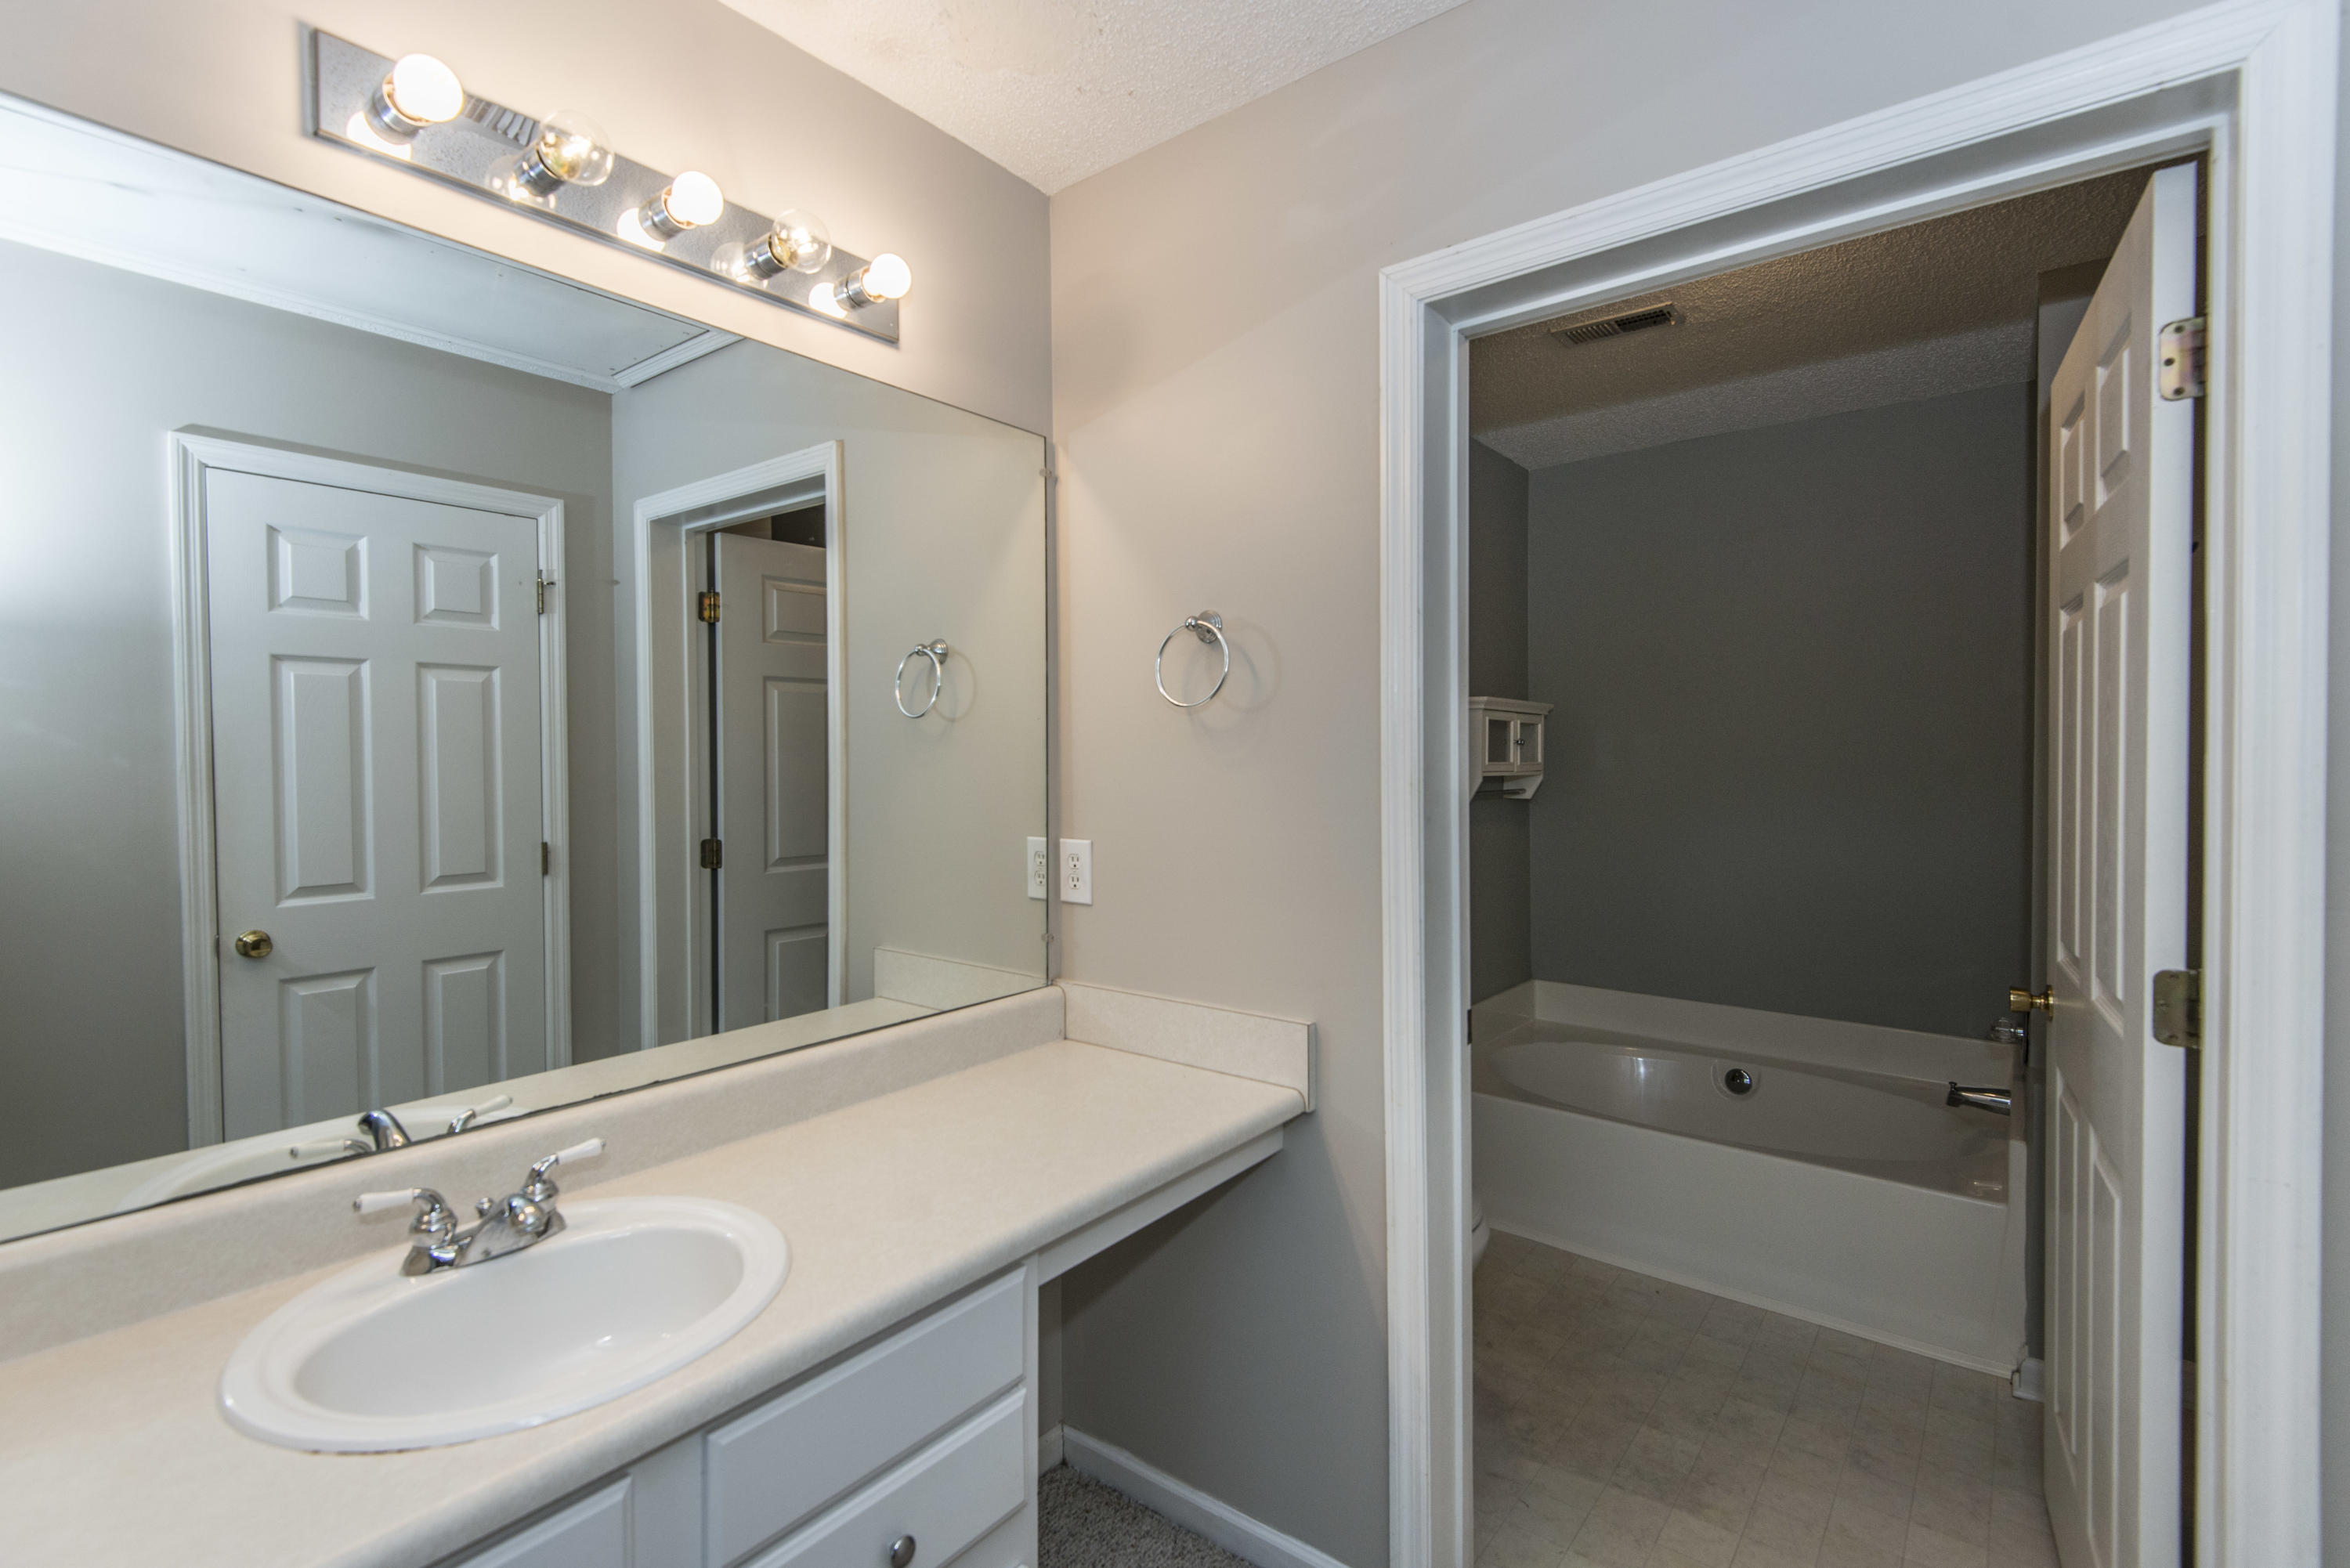 Meridian Place Homes For Sale - 1274 Apex, Charleston, SC - 9